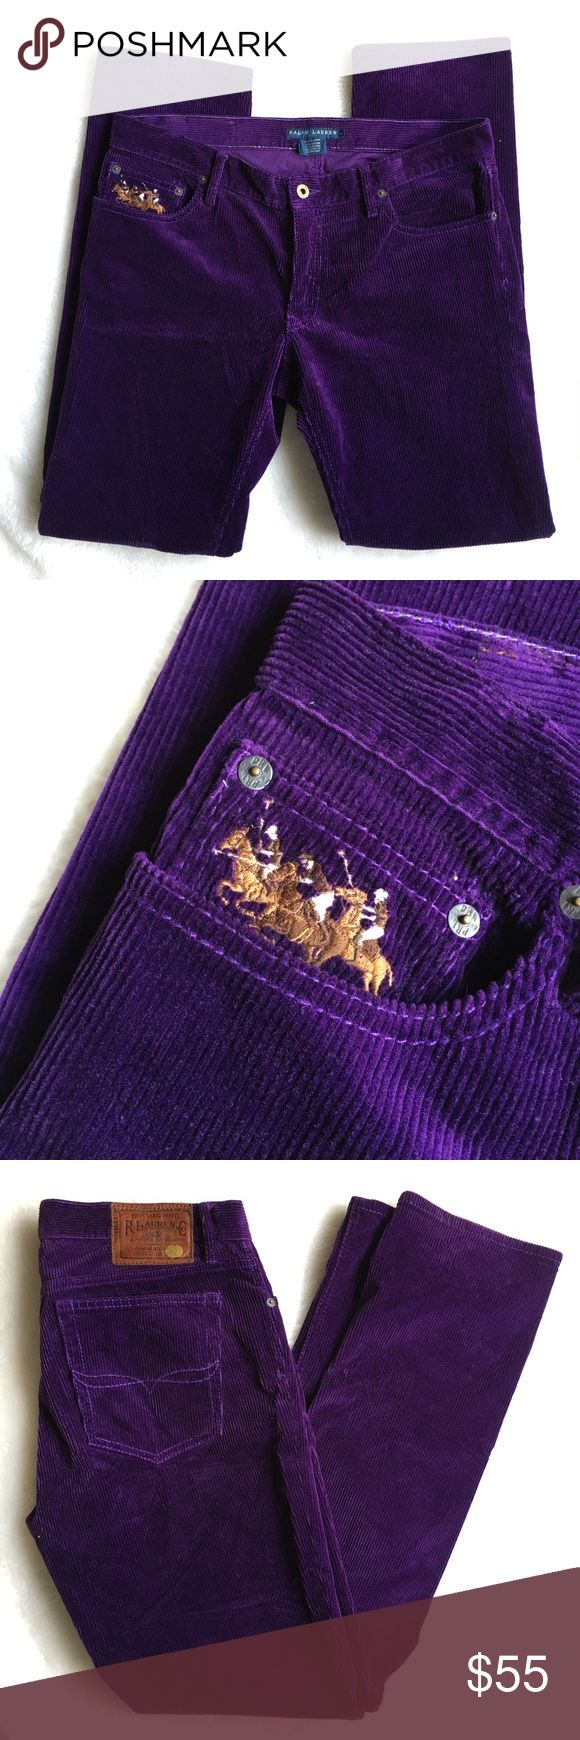 """Ralph Lauren Thompson Corduroy Purple Jeans 12 Like new Ralph Lauren Thompson Corduroy Purple Jeans 12. Rise is 8.5"""" inches. Waist is 16.5"""" inches. Inseam is 31.5"""" inches. Nice horse Embroidered detail in front pocket. Please look at pictures for better reference. Happy shopping! Ralph Lauren Jeans"""